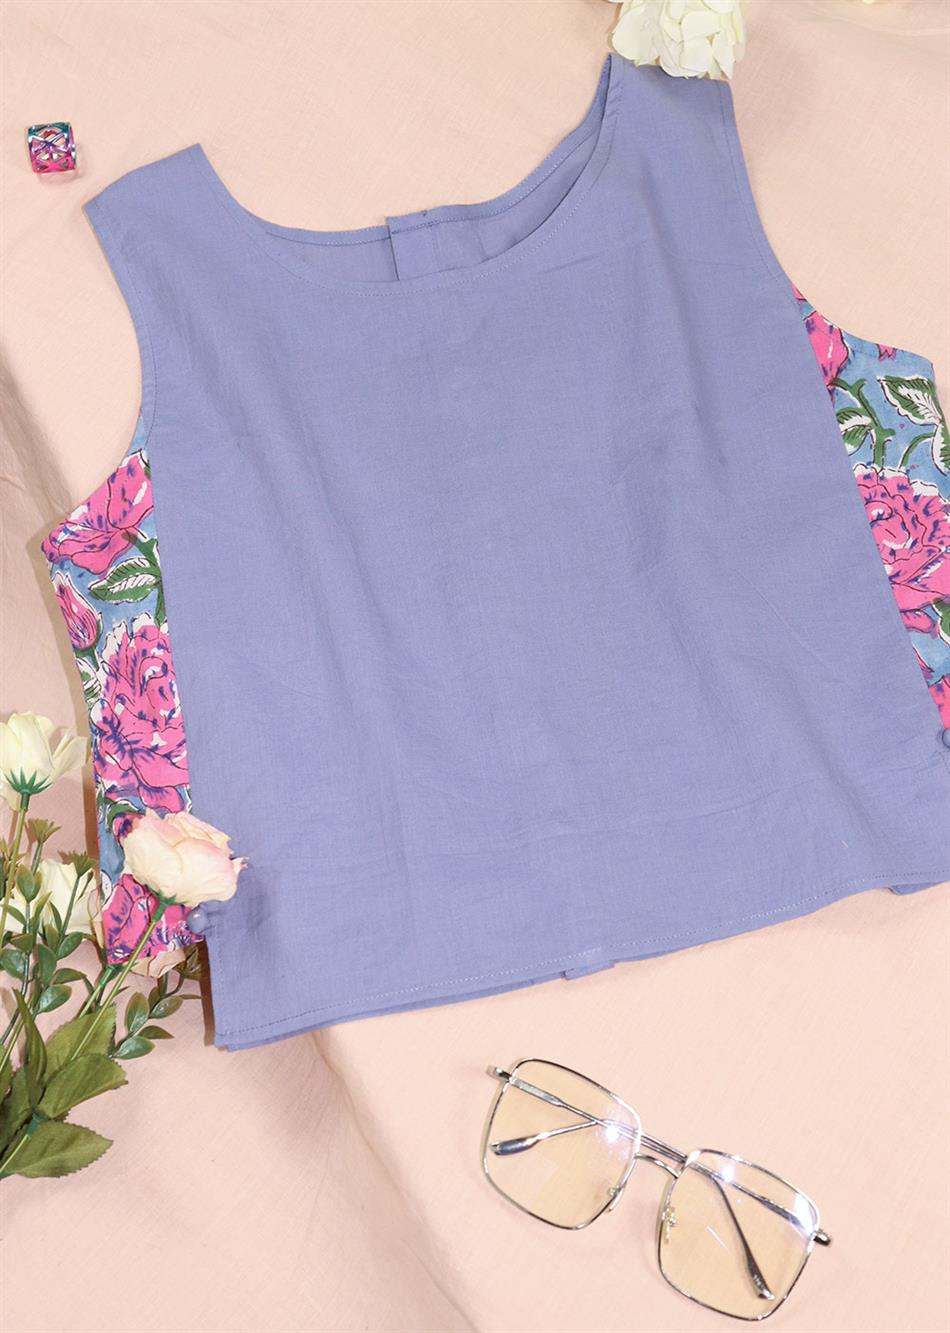 SUMMER SIDE PANEL TOPS (COLORS AVAILABLE) By Jovi Fashion